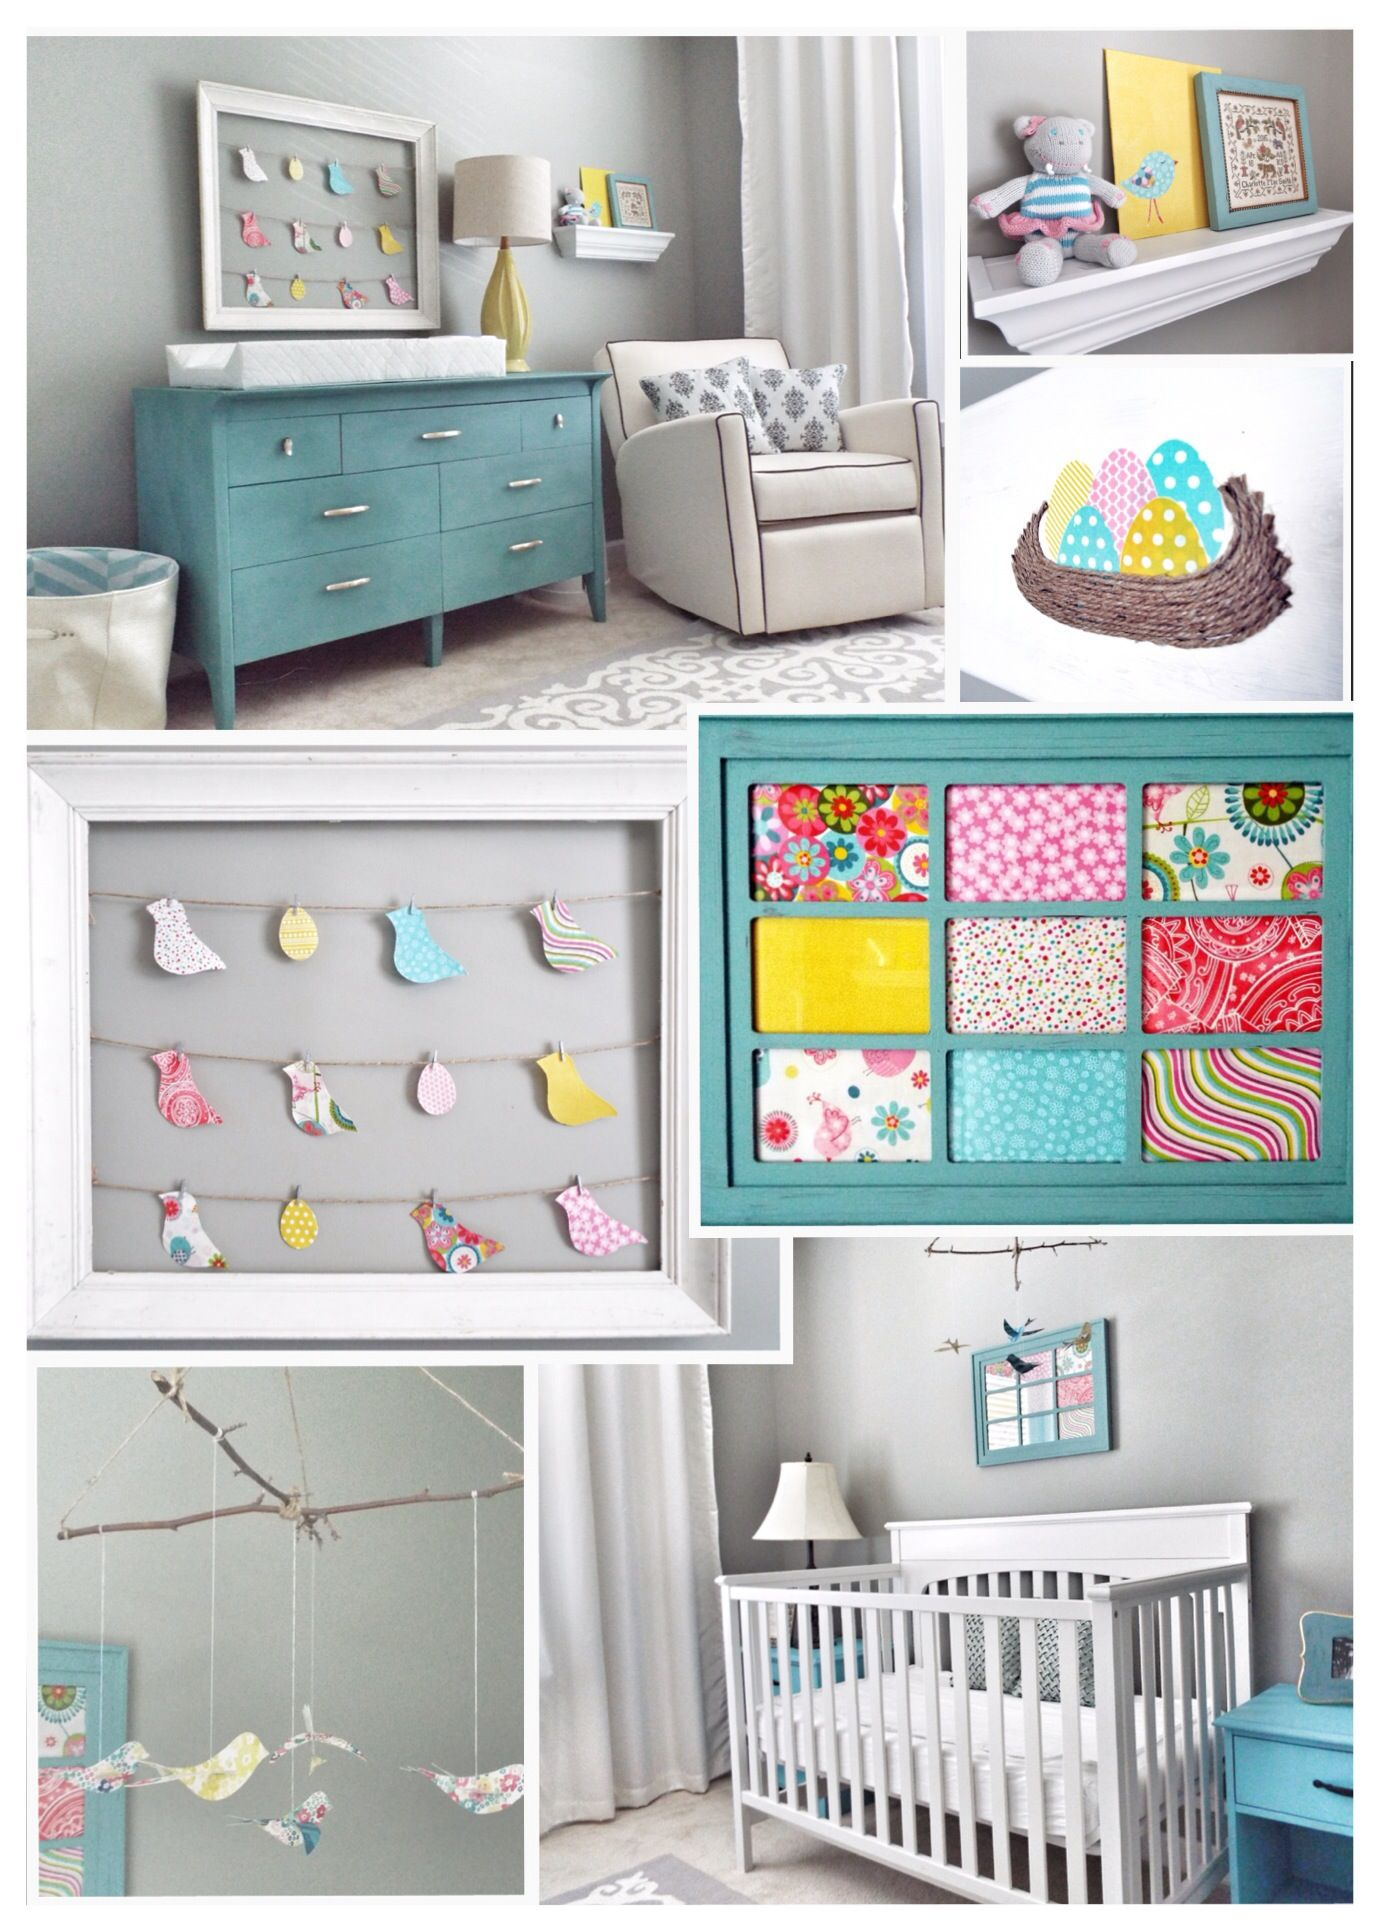 A Perfectly Pretty Turquoise Yellow And Pink Bird Themed Nursery Part 1 Chalk Painted Dresser